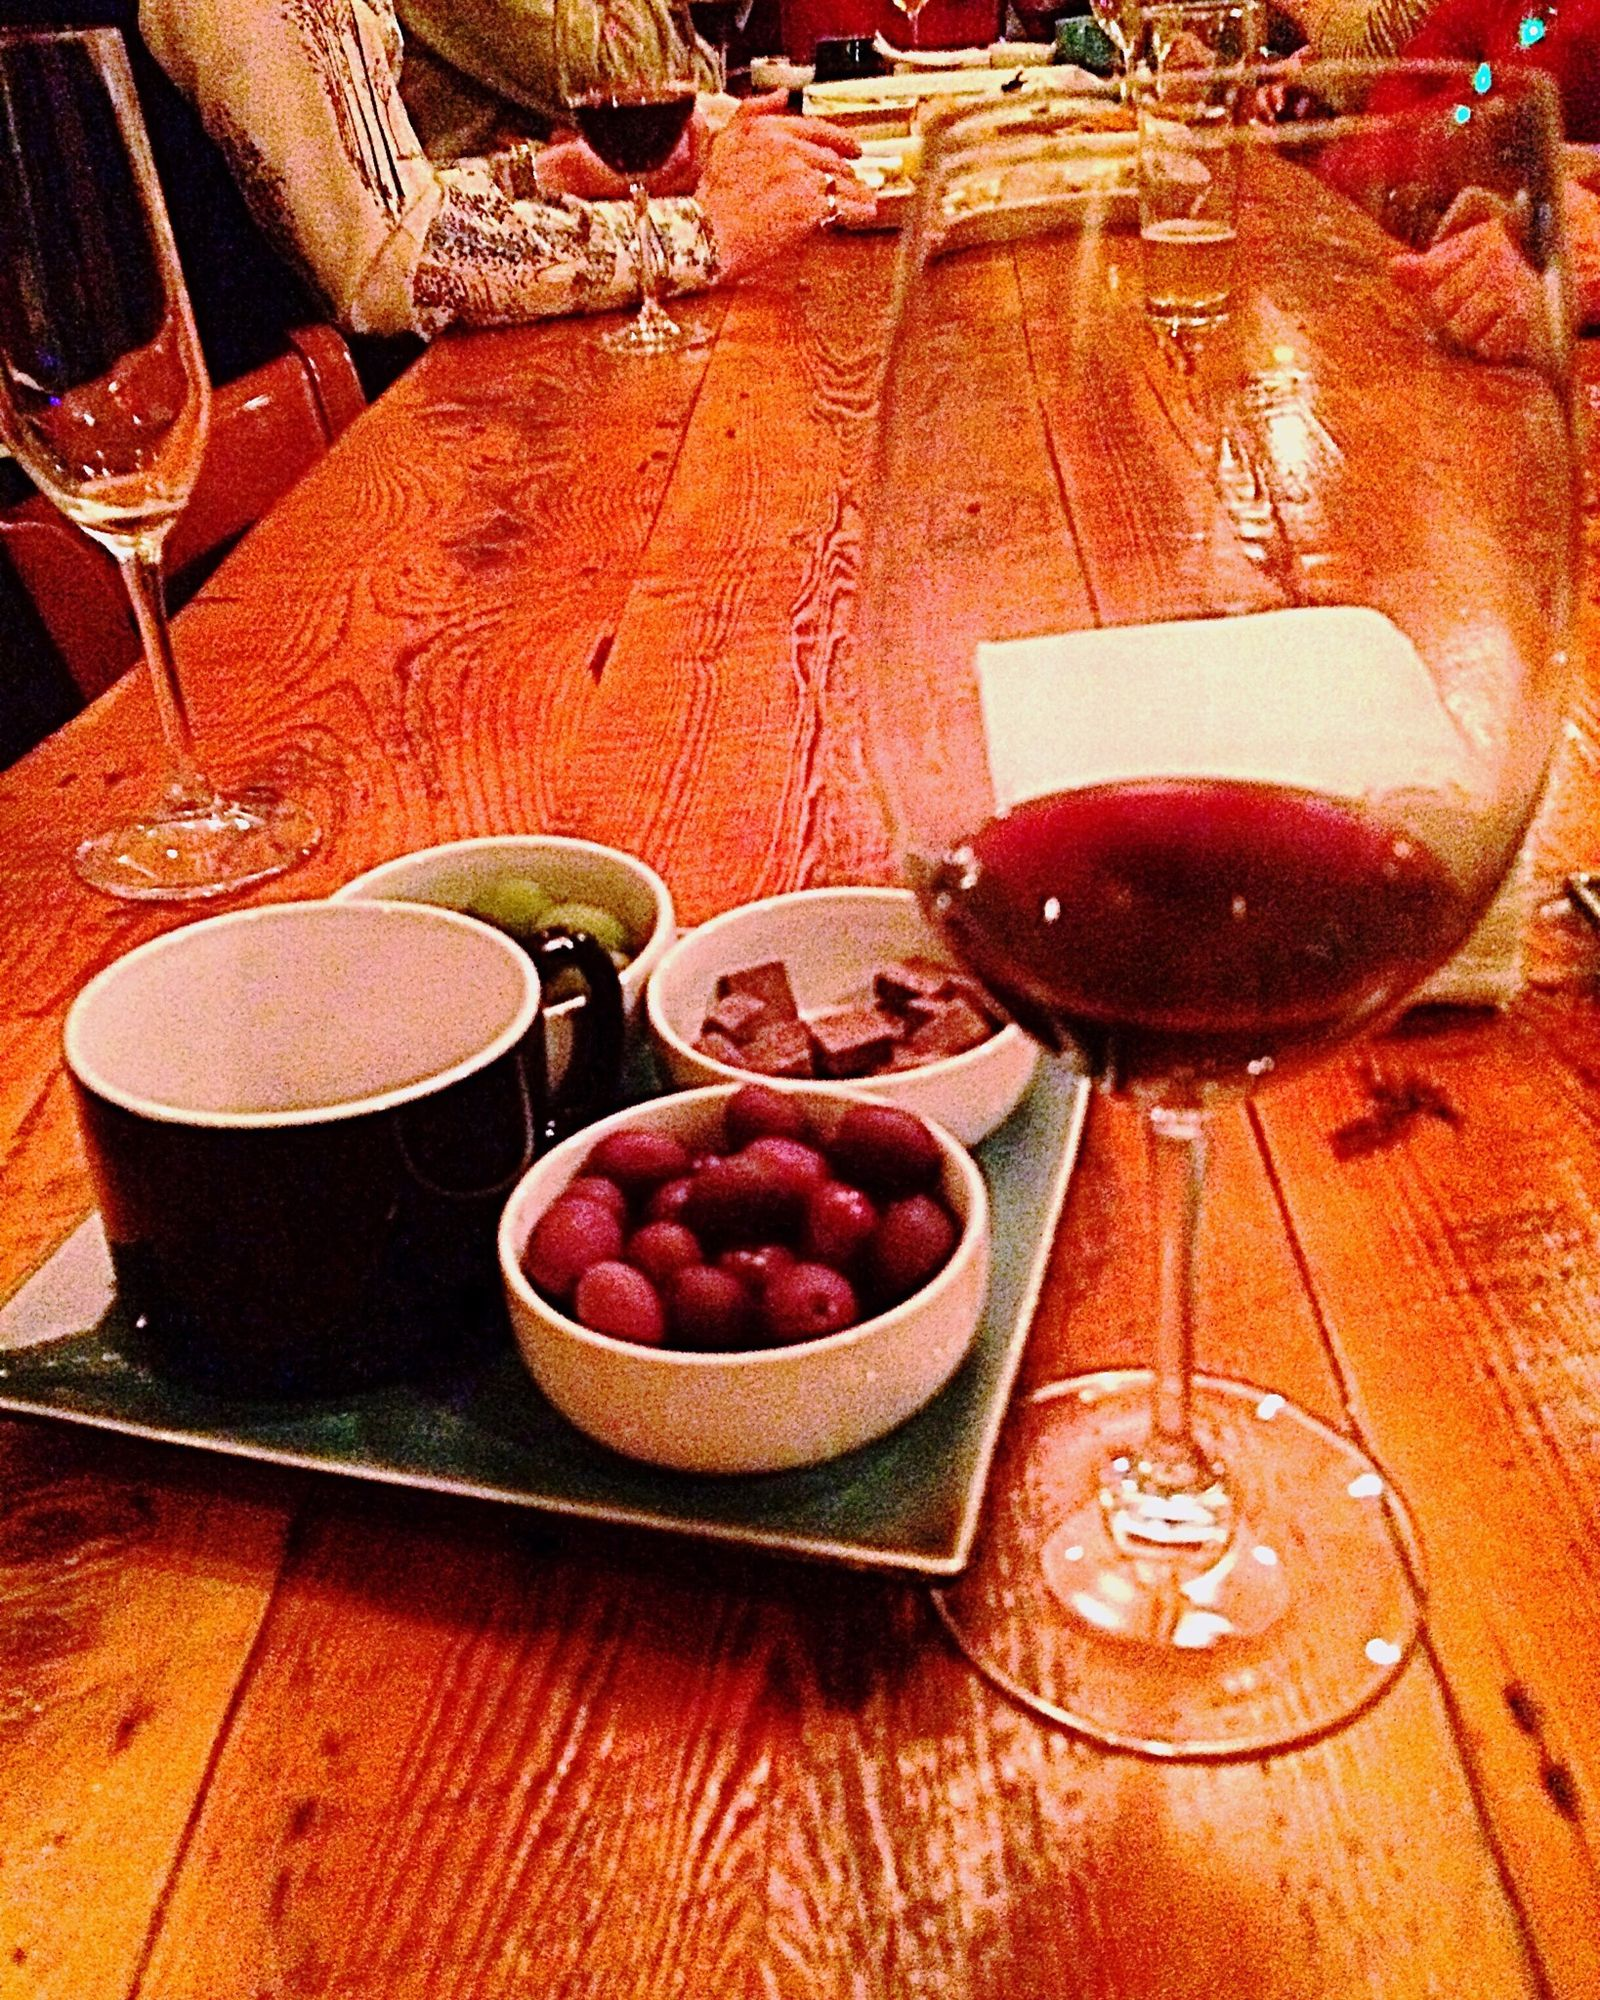 Wine Wine Bar Red Wine Malbec Glass Cheers Happy Hour Cheese Olives Dining Foodie Portland Maine Relaxing Be Merry Wine Enthusiast Happy Merlot Sangiovese